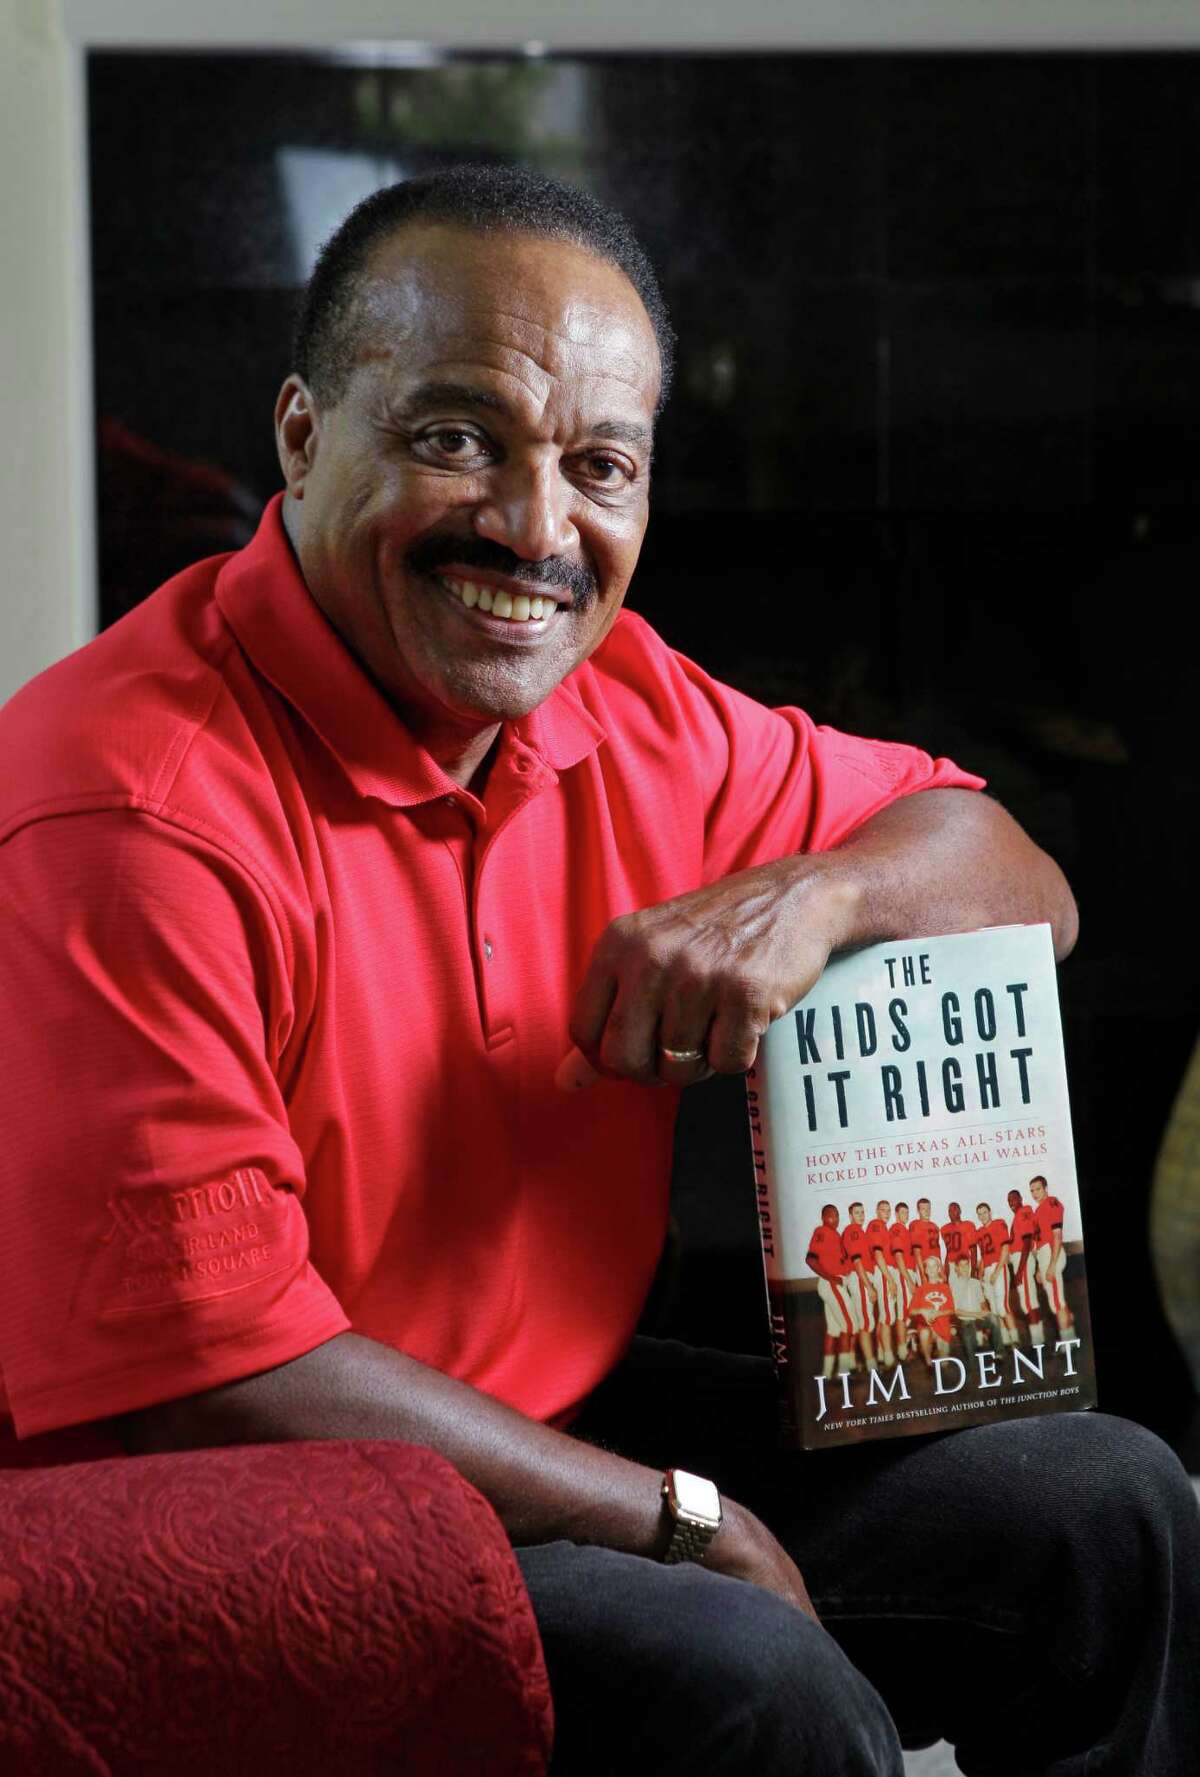 Jerry LeVias poses with the new book in which he is featured titled